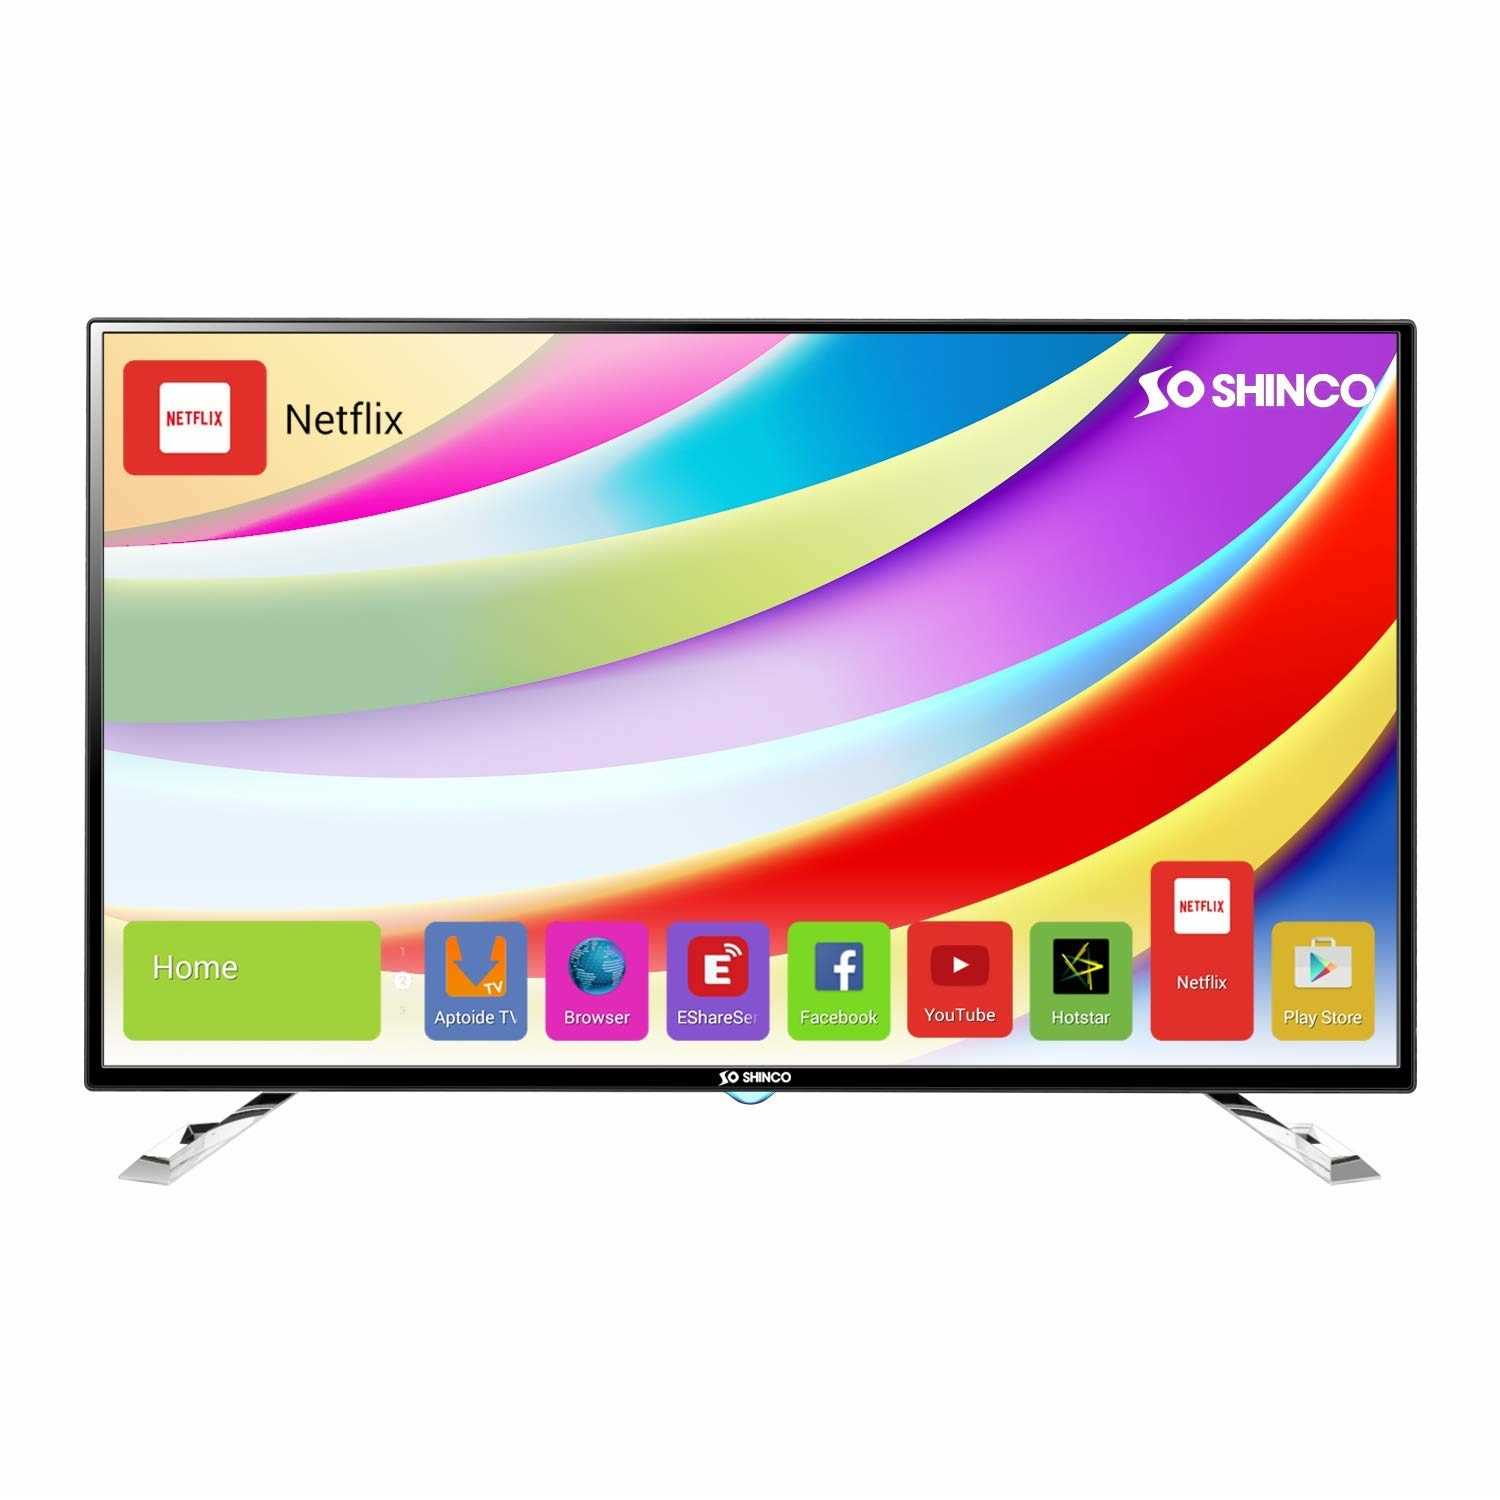 Shinco SO50AS 48 Inch Full HD Smart LED Television